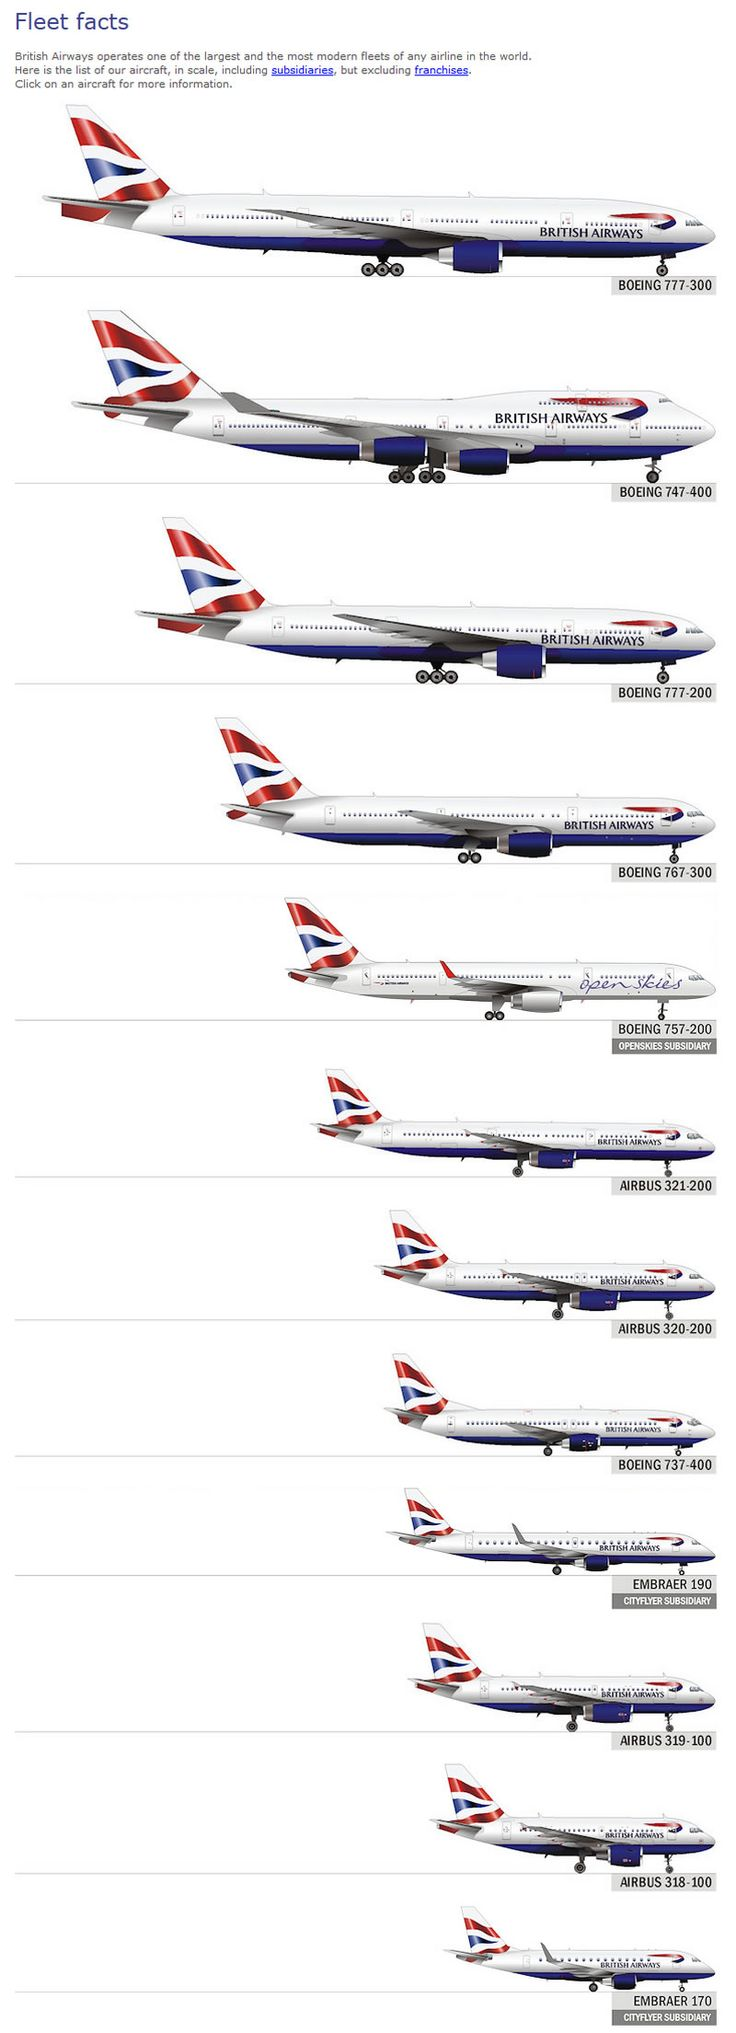 Quite an old fleet chart. Definitely before 2013 because there isn't an Airbus a380 or a Boeing 787 Dreamliner